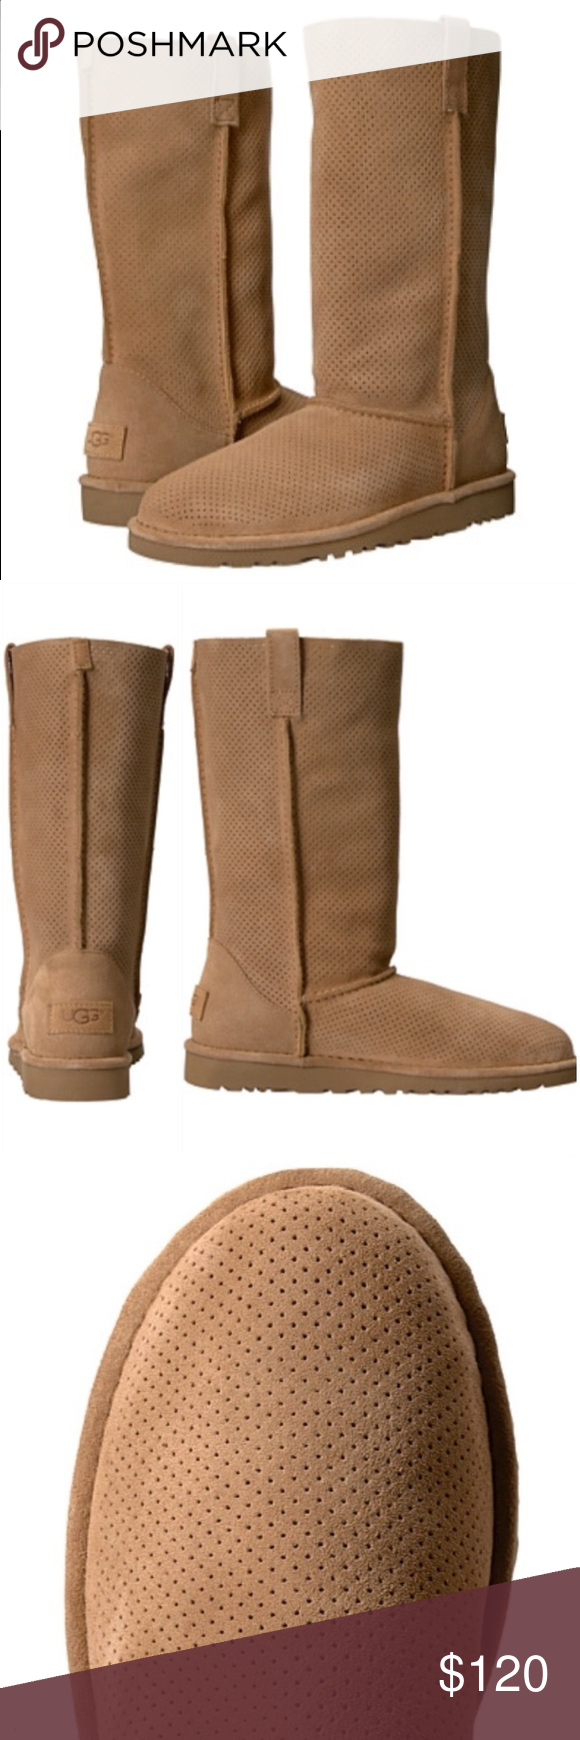 0b0f167a9a5 UGG Shoes | New Ugg Classic Perforated Tall Unlined Boots | Color ...